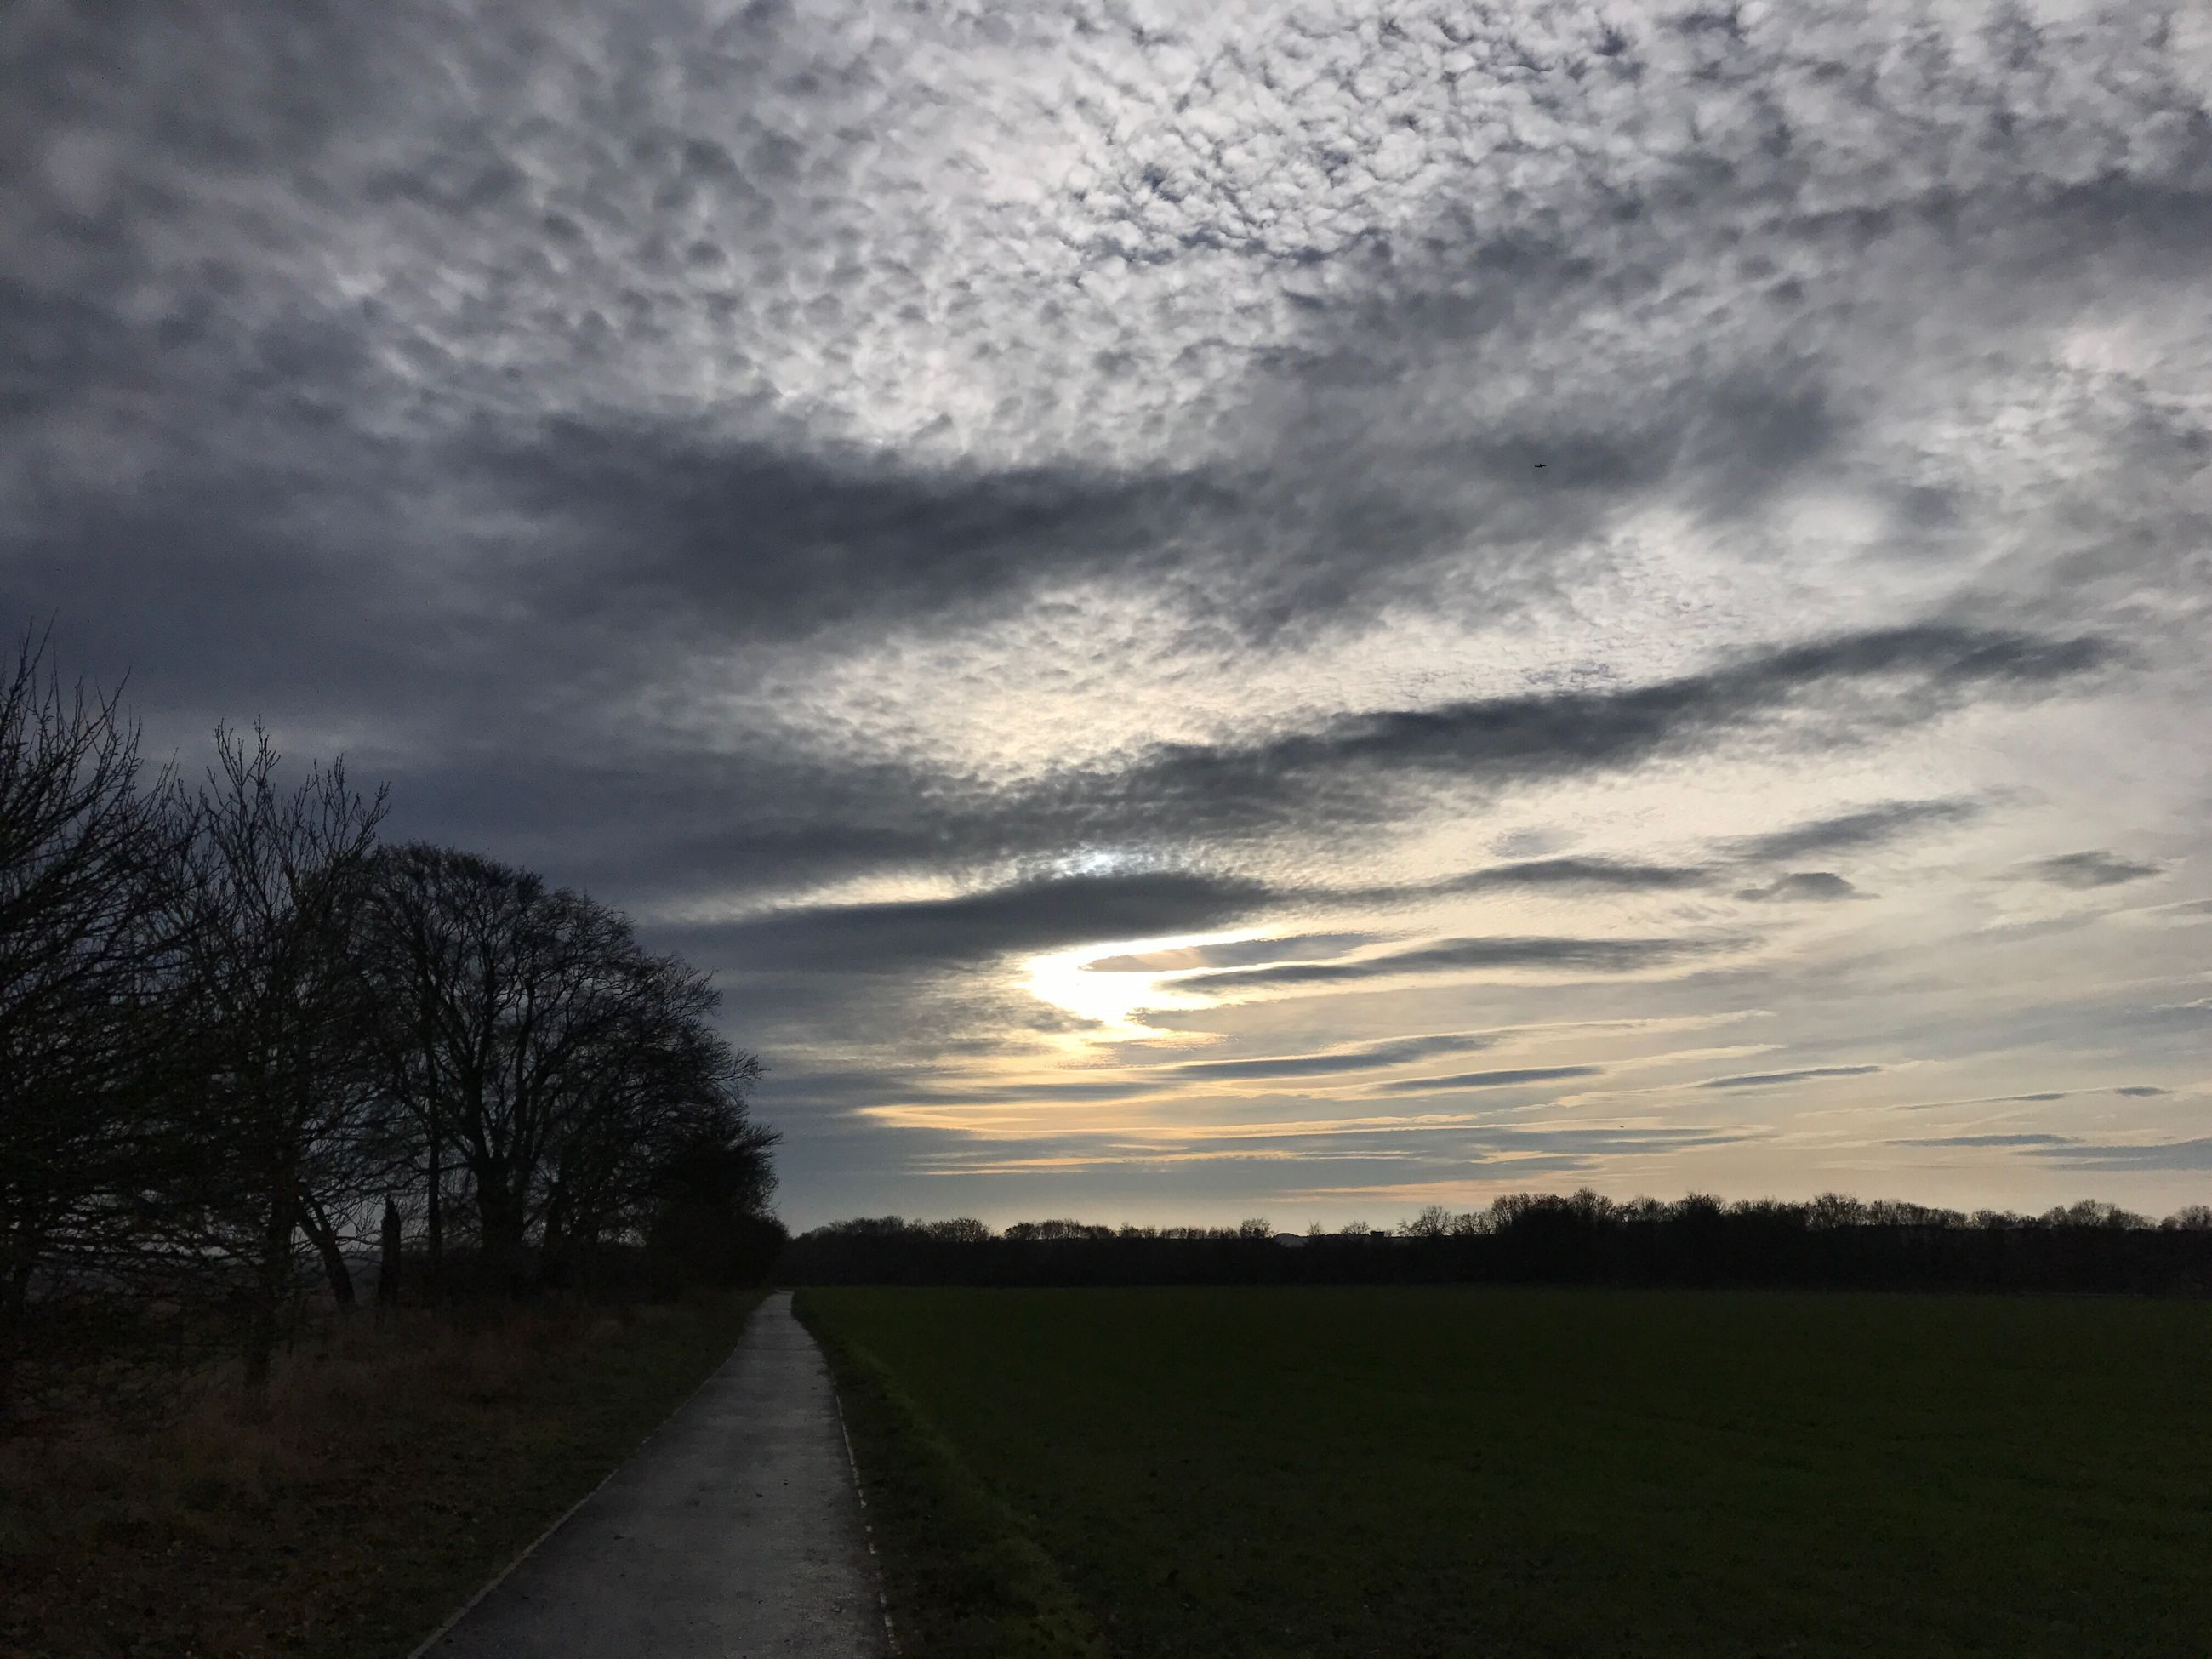 road, tree, cloud - sky, no people, transportation, the way forward, nature, sunset, sky, outdoors, landscape, scenics, beauty in nature, day